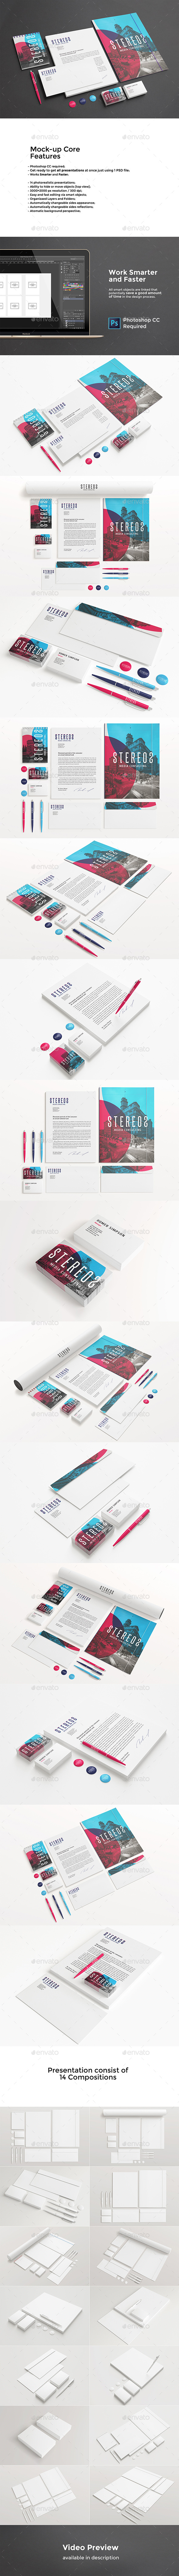 Identity Mock-Up Vol 1.0 (Stationery)